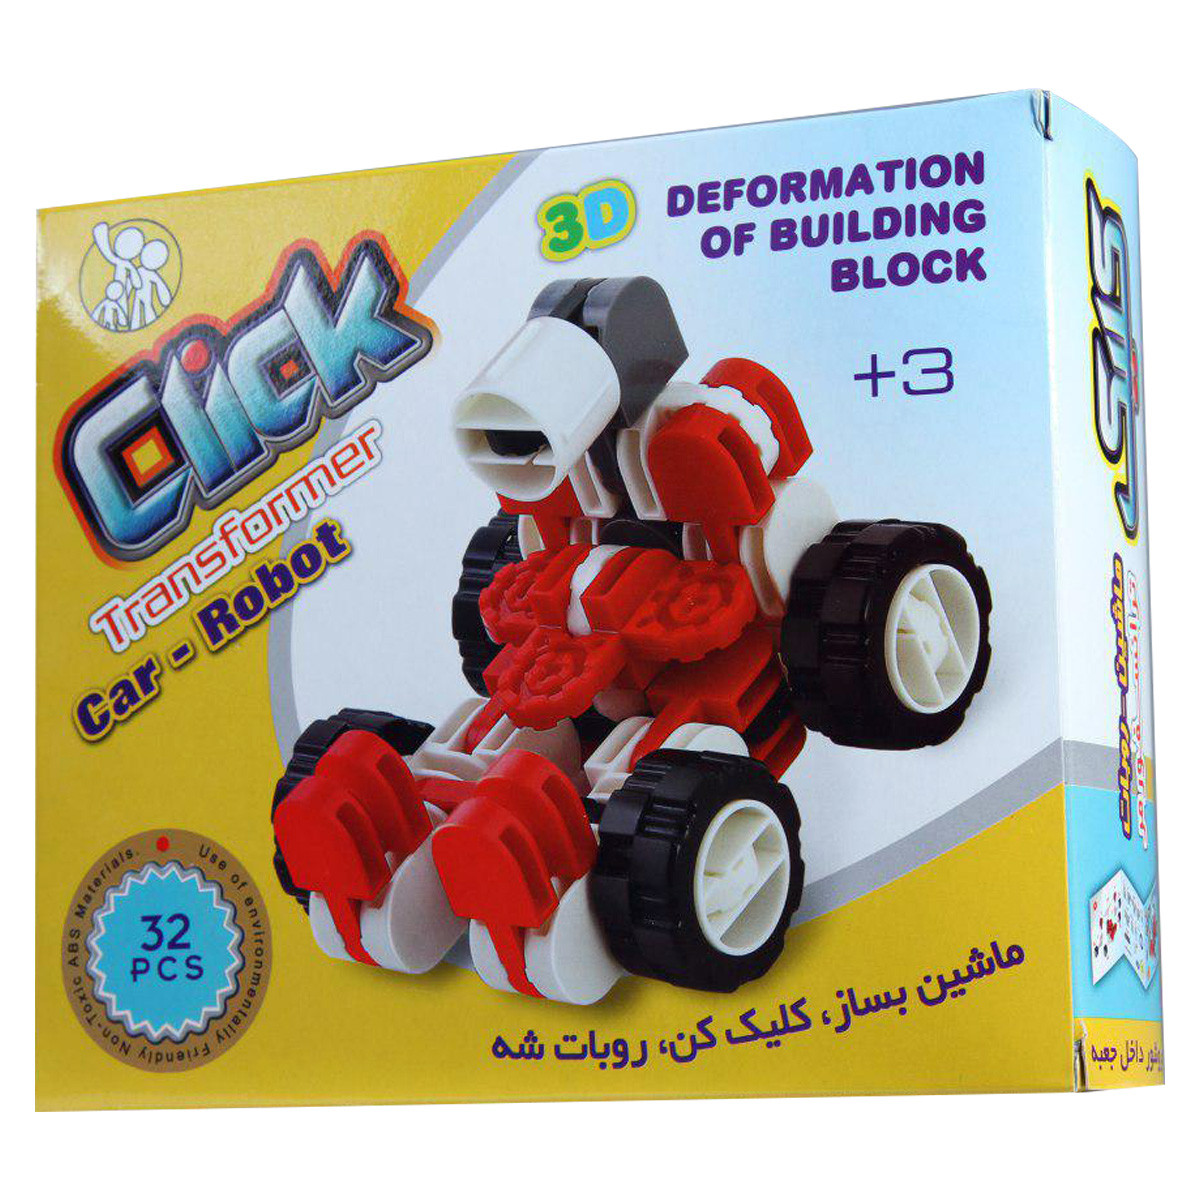 بازی فکری ام دی تویز MD Toys Machine Click Intellectual Game